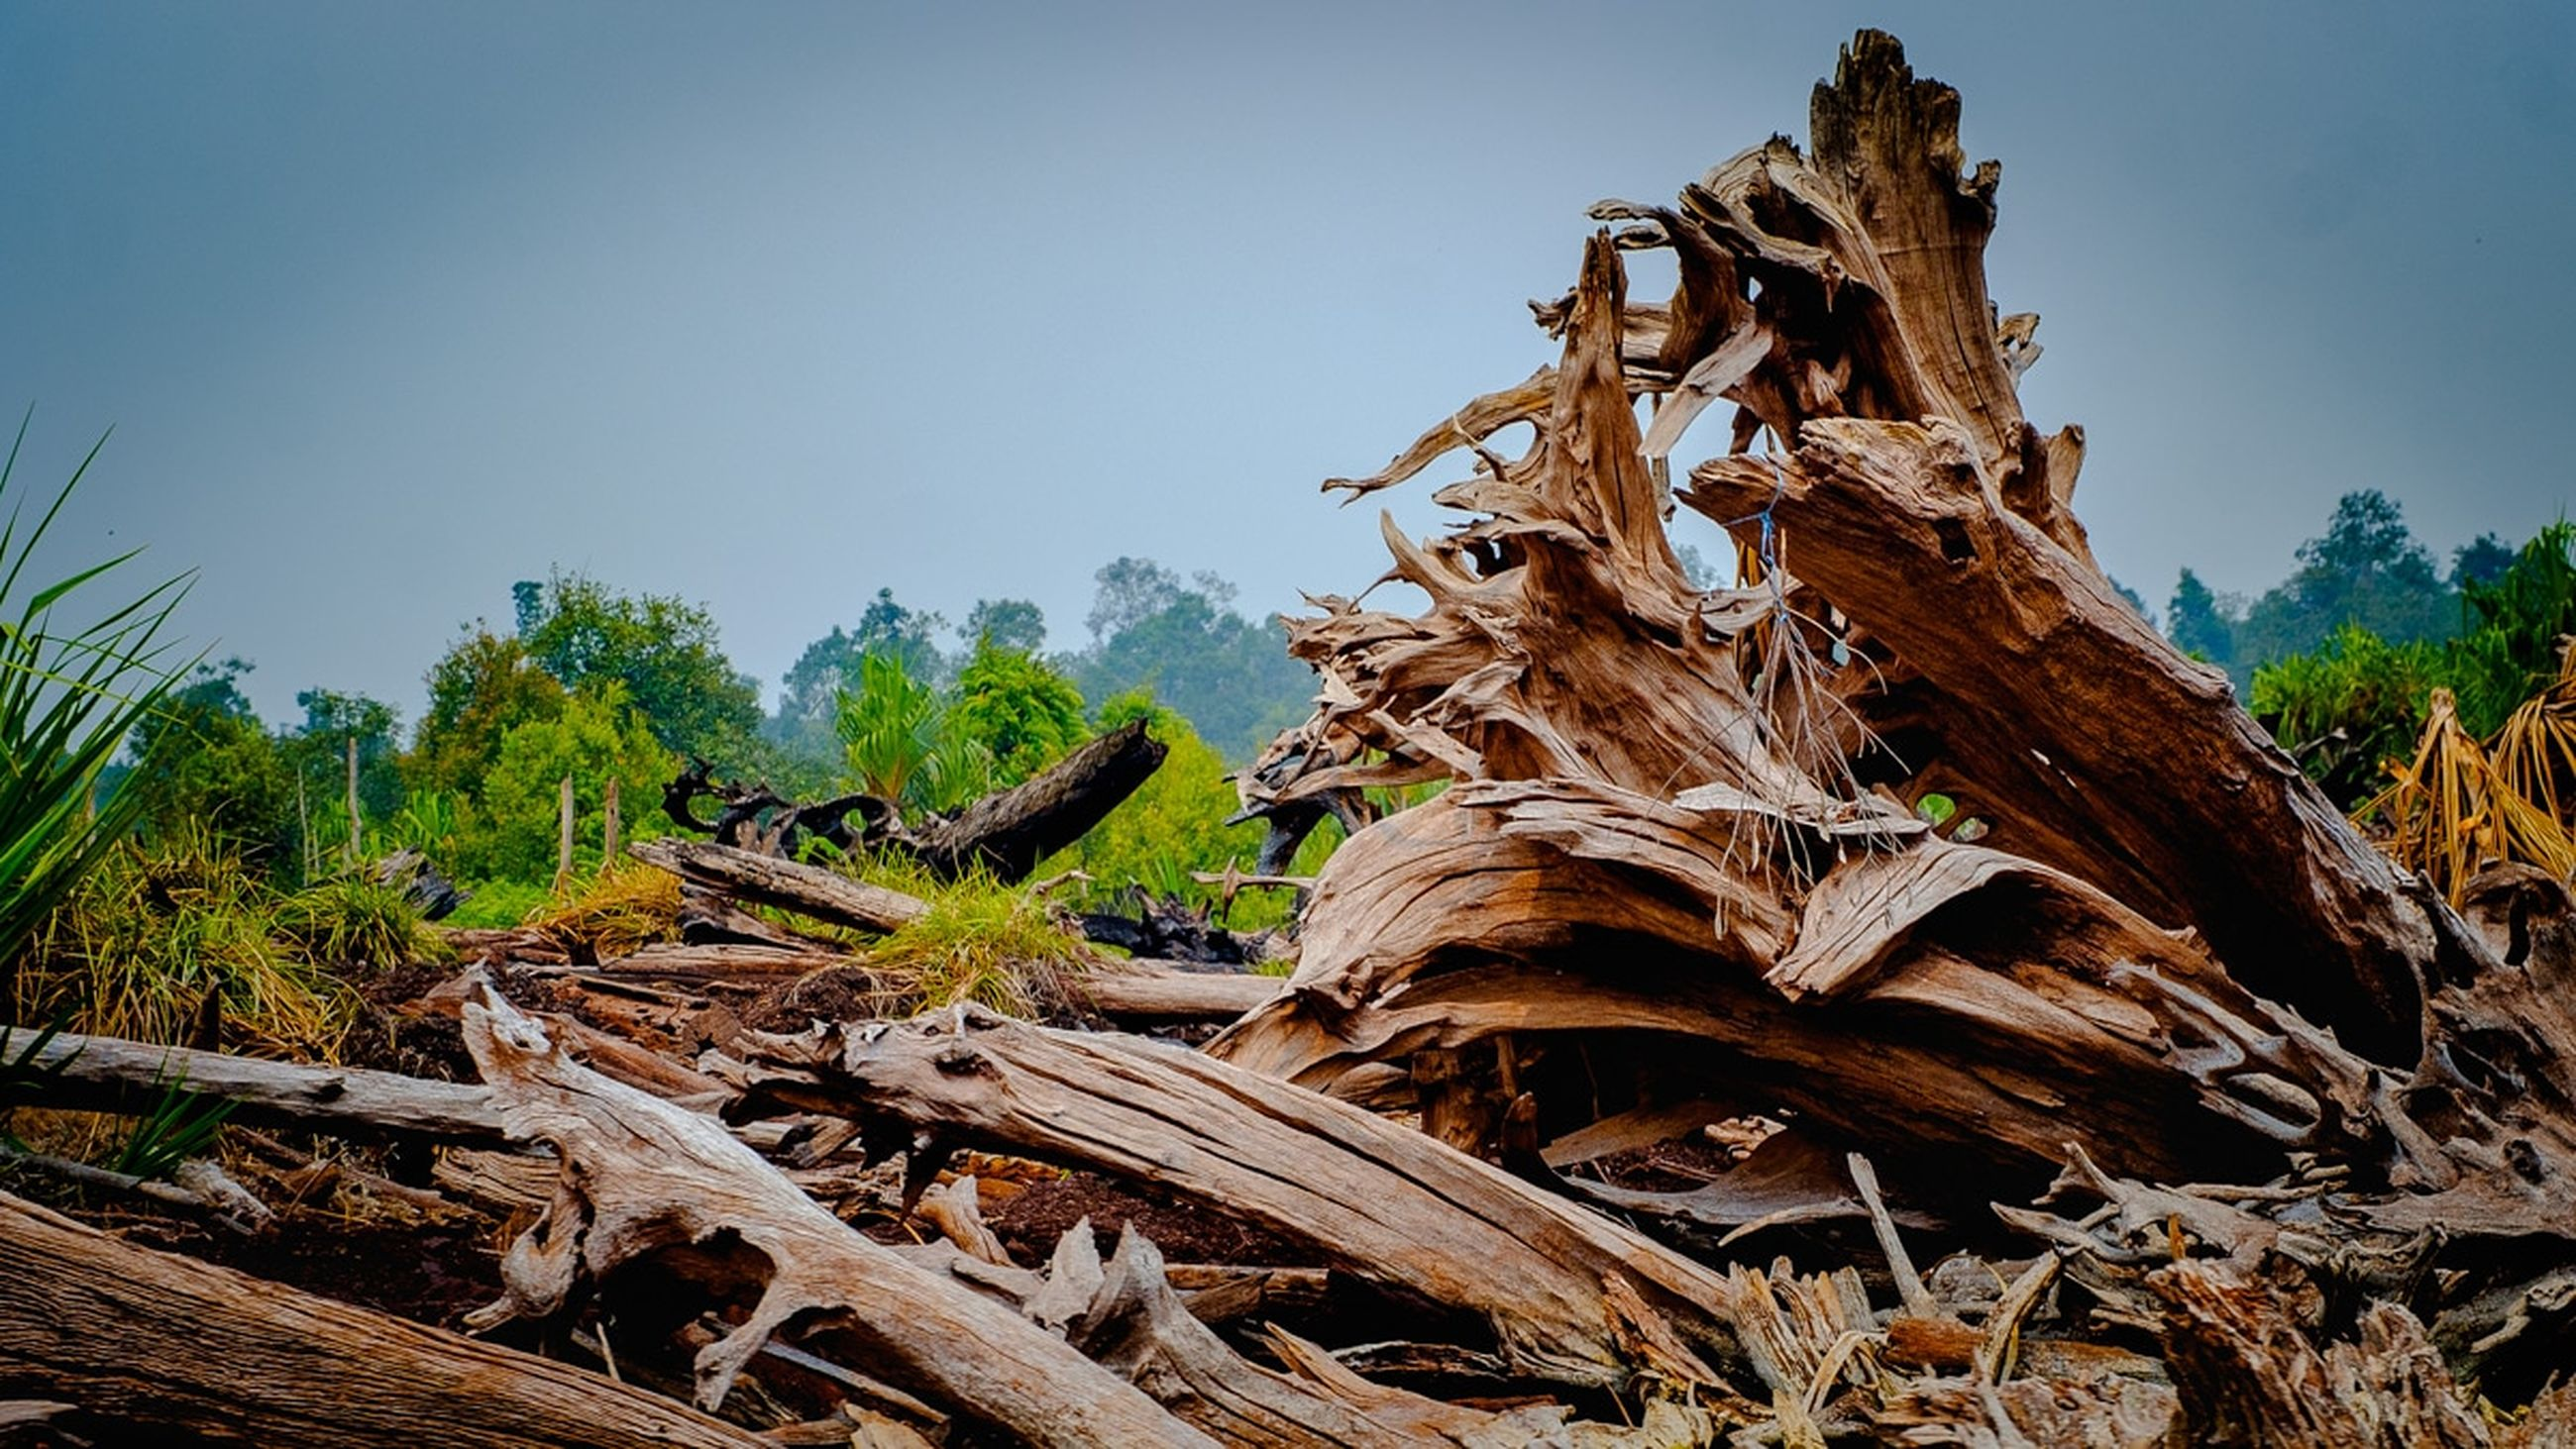 tree, plant, wood - material, sky, nature, day, no people, wood, land, clear sky, growth, damaged, tree trunk, tranquility, trunk, forest, outdoors, field, timber, log, dead plant, bark, driftwood